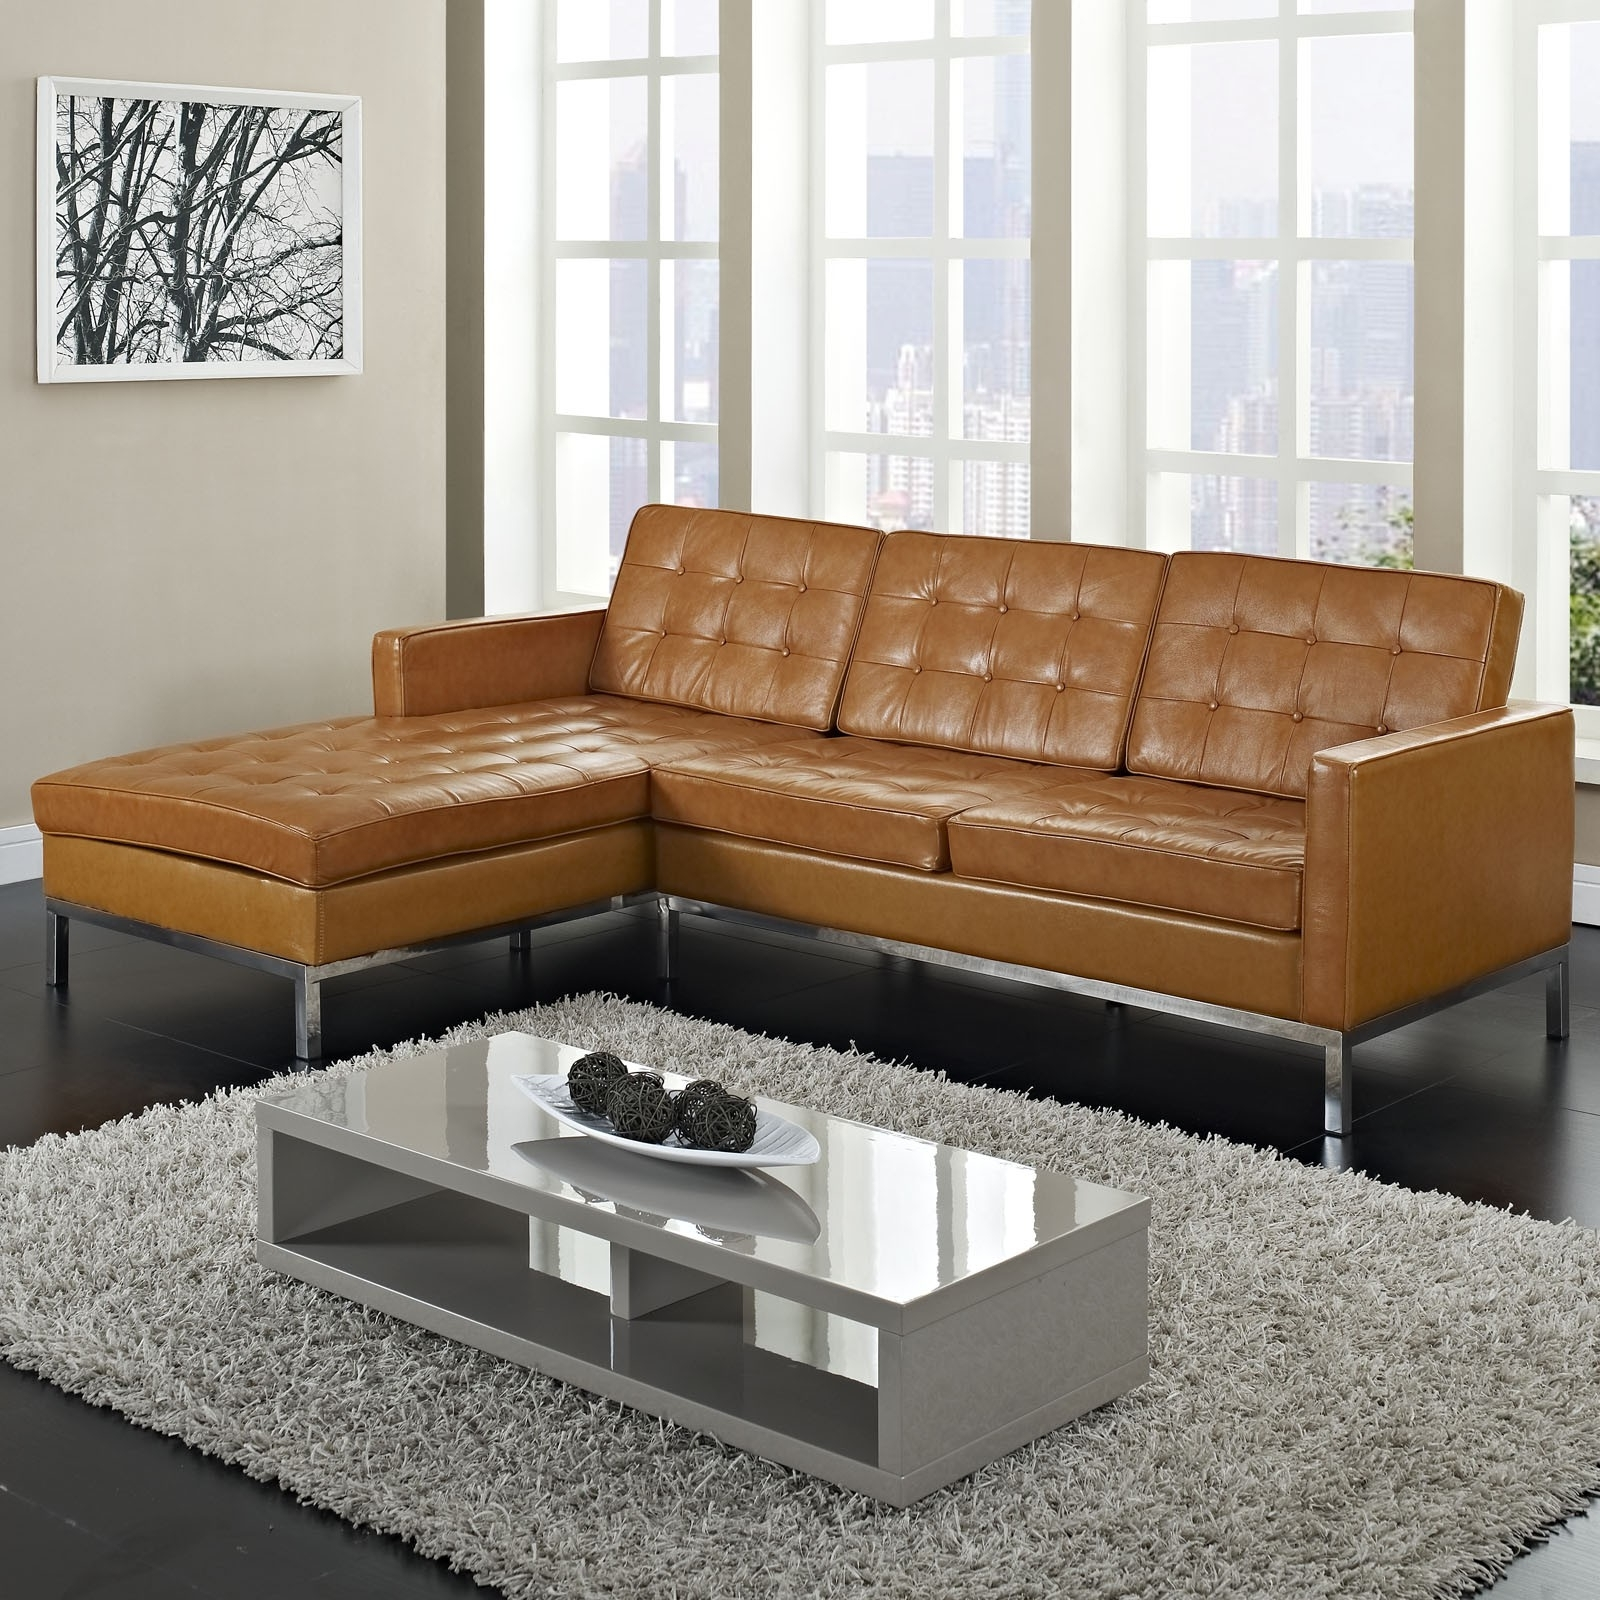 Furniture, Maximizing Small Living Room Spaces With 3 Piece Brown Inside Most Recent Sectional Sofas For Small Places (View 7 of 15)